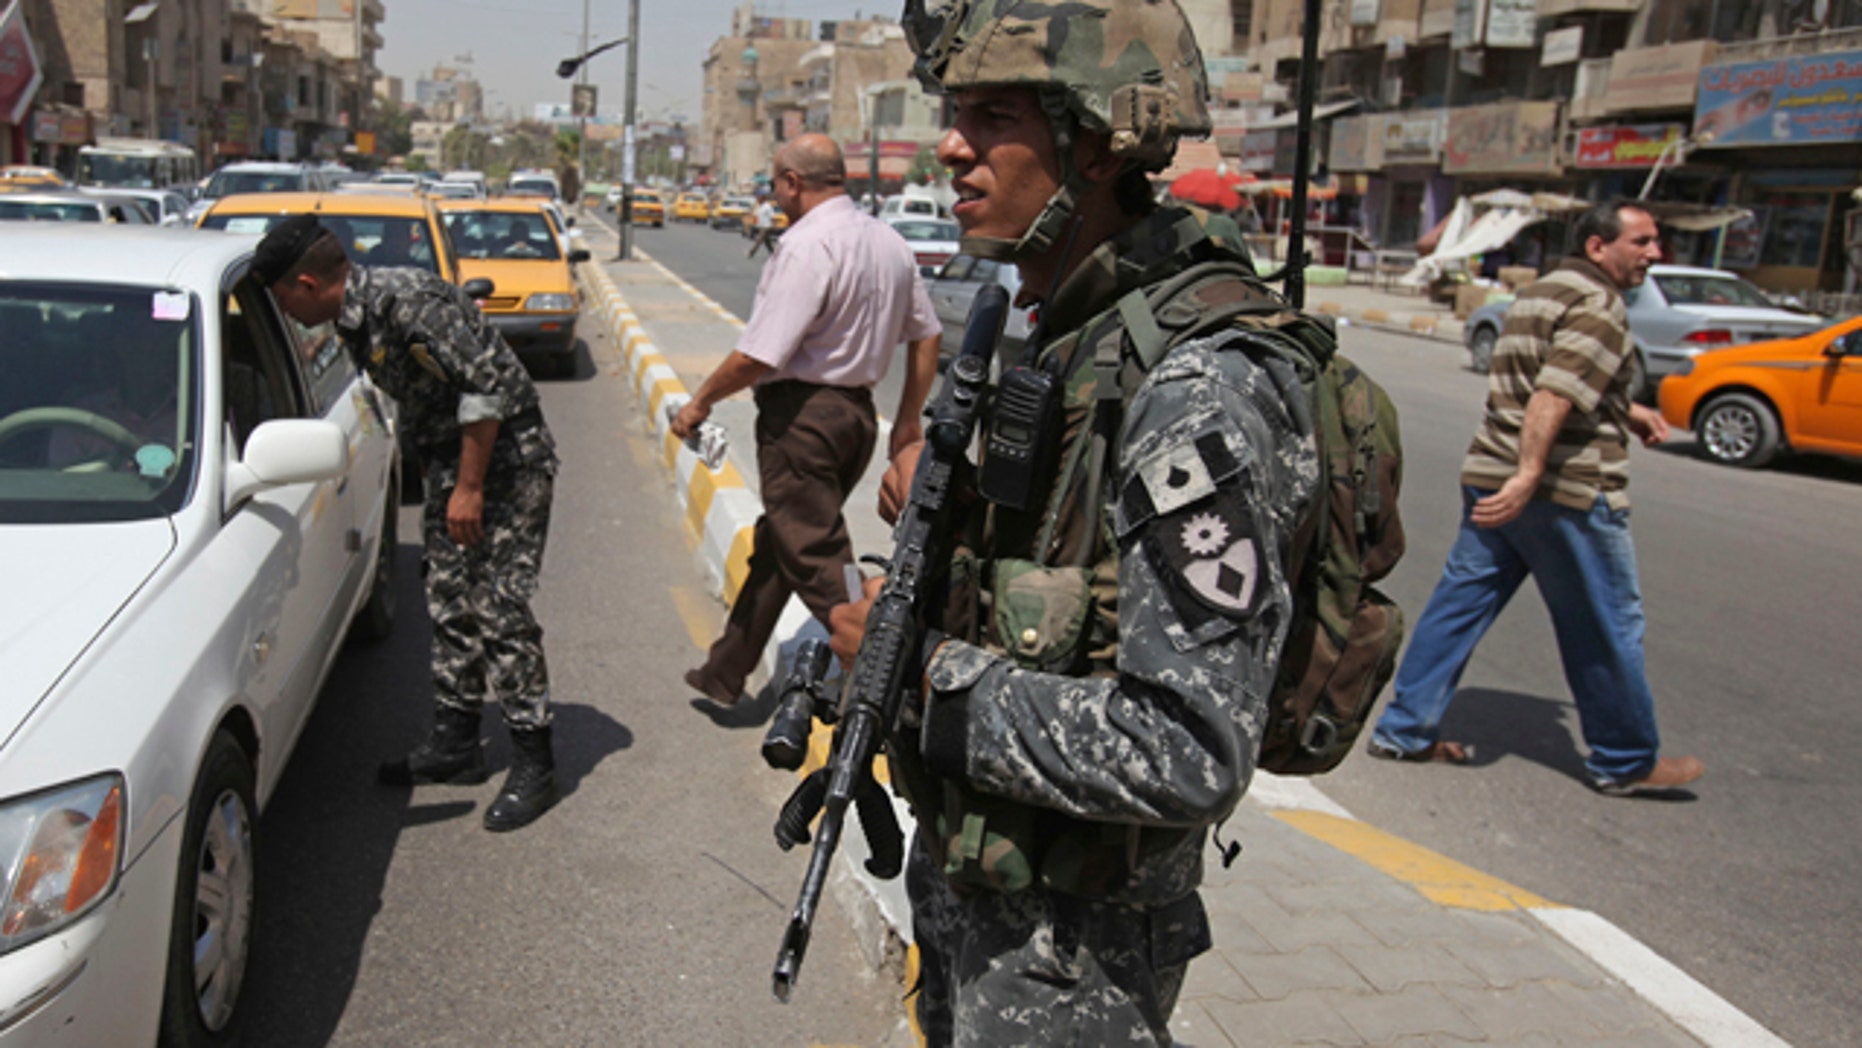 Aug. 31: An Iraqi police officer stands at a checkpoint in Baghdad, Iraq.